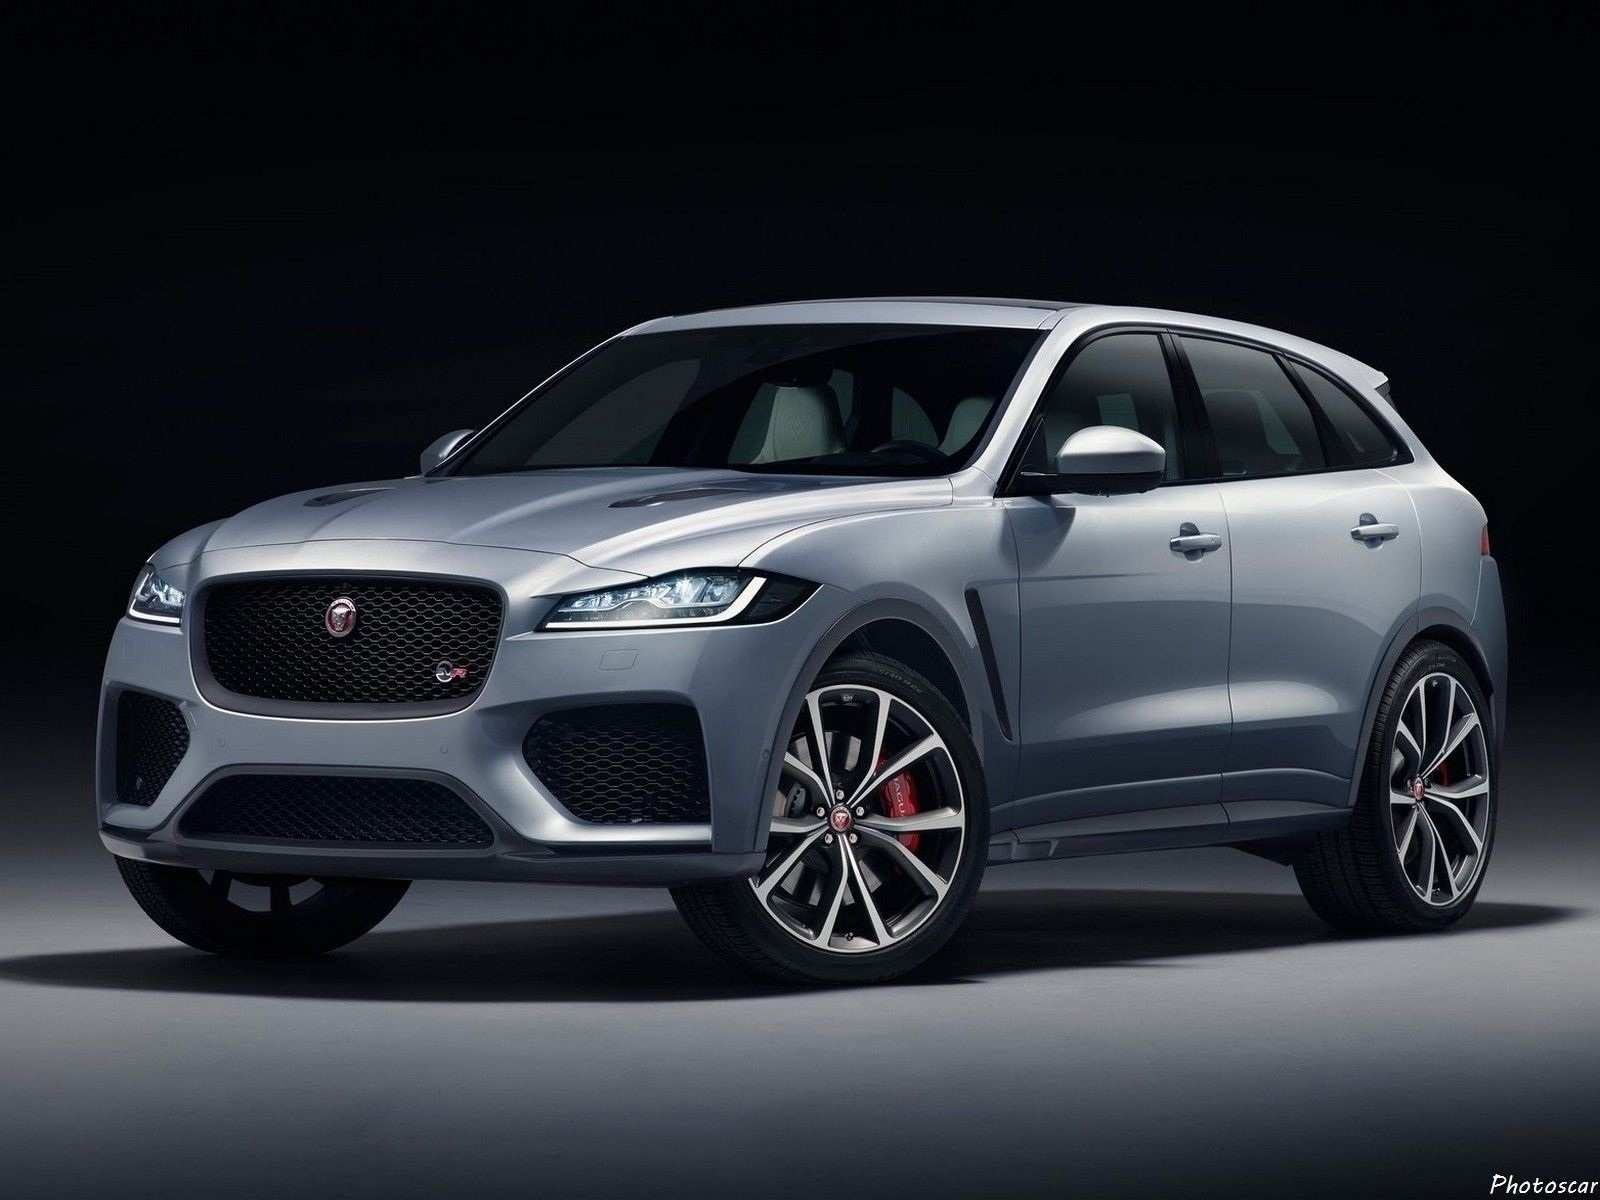 58 Great 2019 Jaguar Xq Crossover Performance and New Engine for 2019 Jaguar Xq Crossover